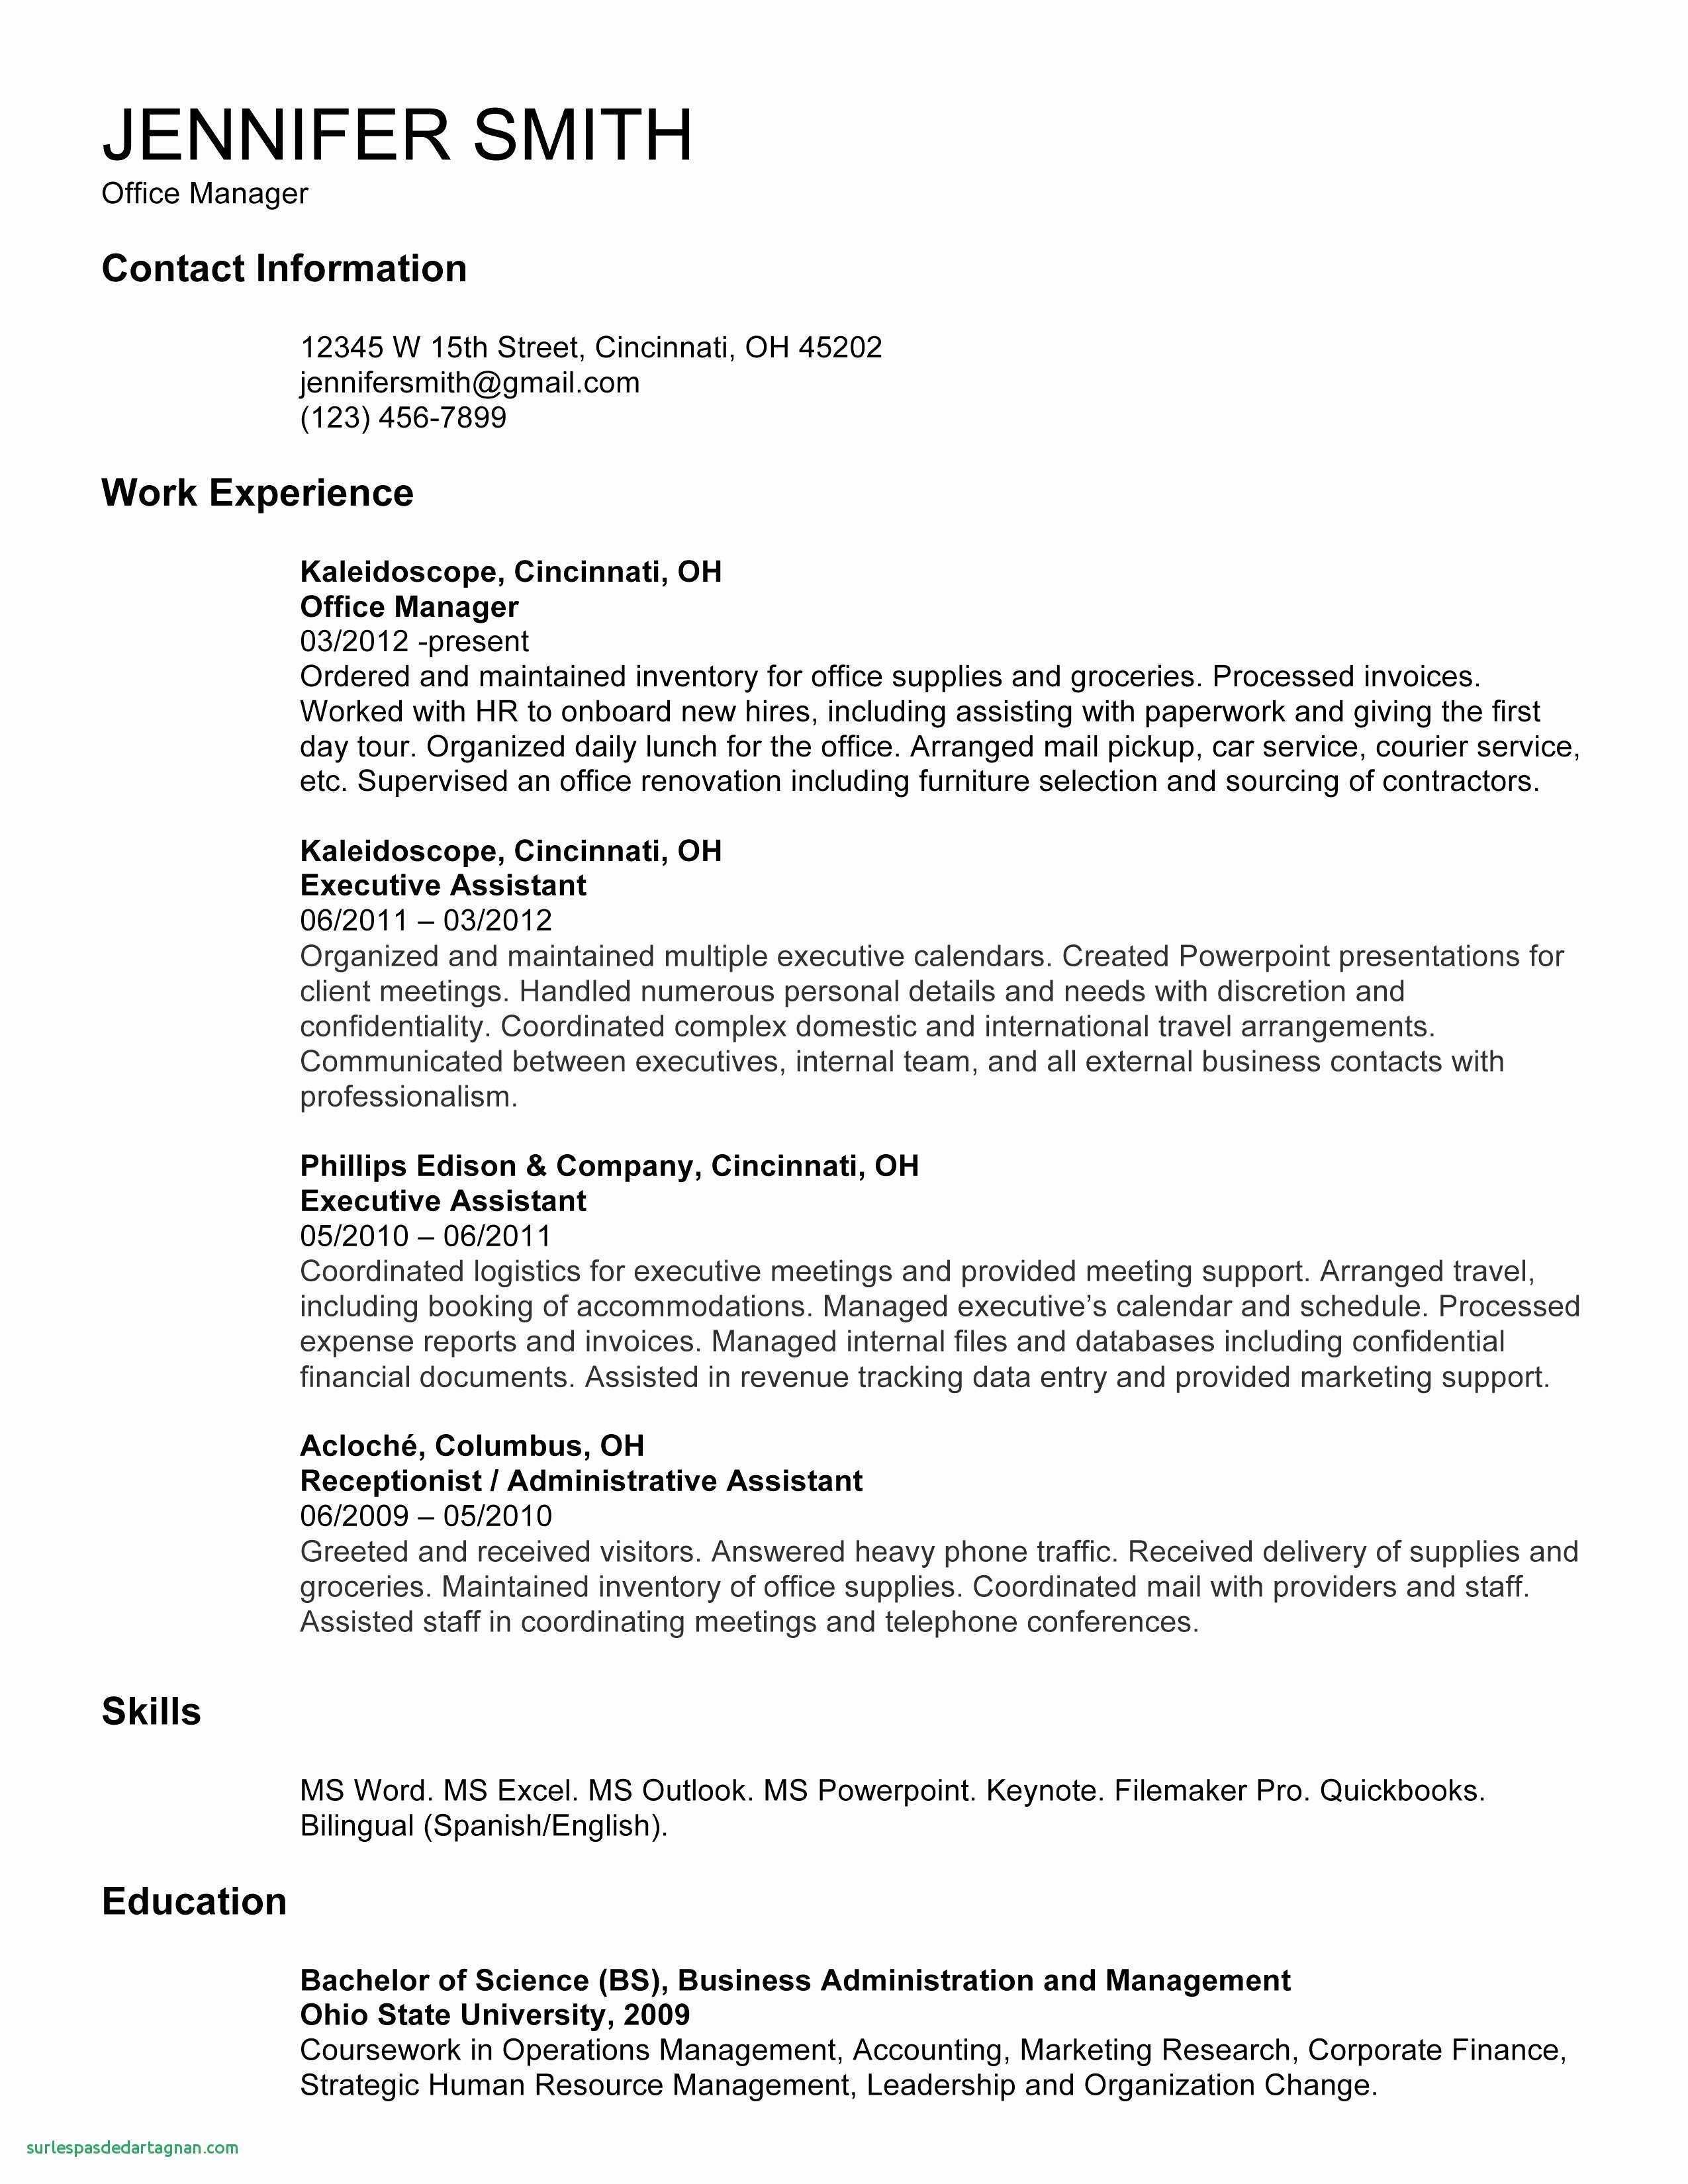 Customer Service Resume Objective - Objective for Sales Resume Luxury Sample Sales Report Writing with